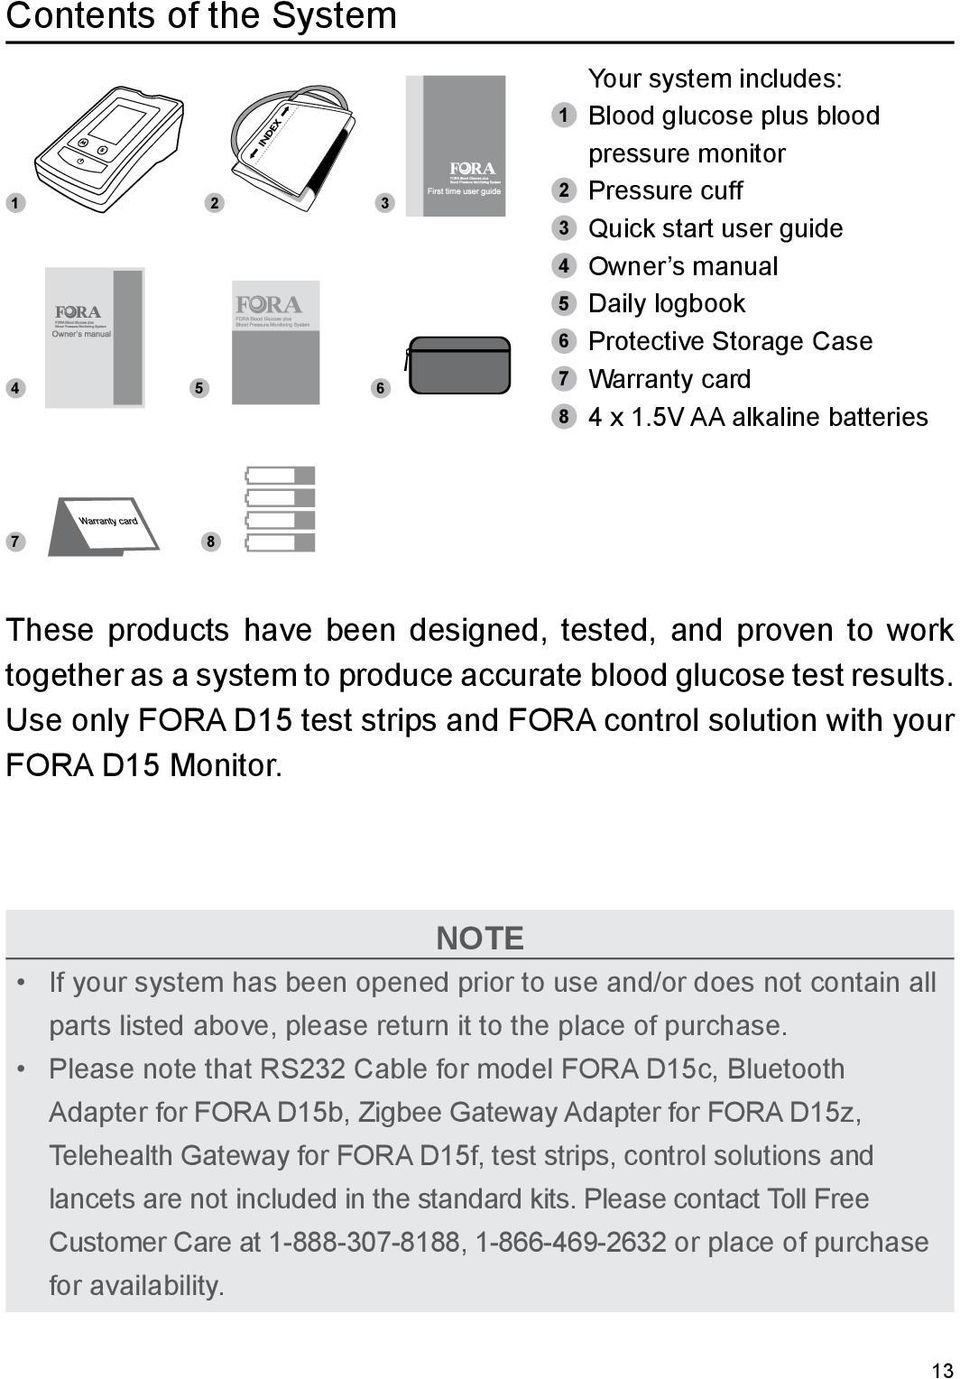 Use only FORA D15 test strips and FORA control solution with your FORA D15 Monitor.